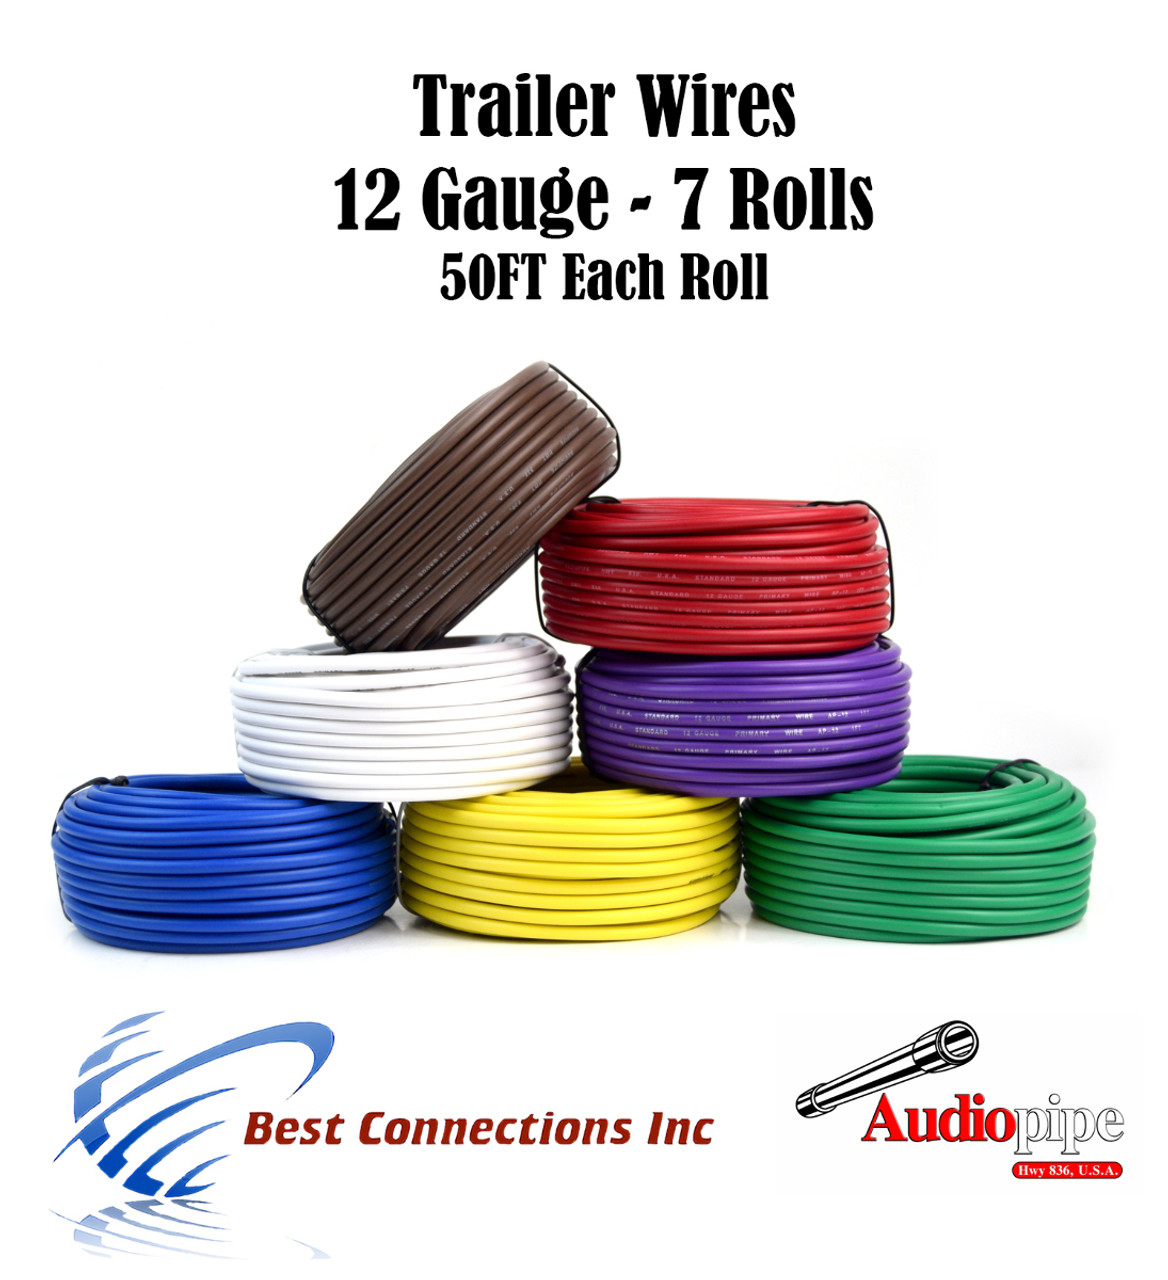 Audiopipe Trailer Wire Light Cable for Harness 7 Way Cord 12 Gauge 100ft roll 7 Rolls